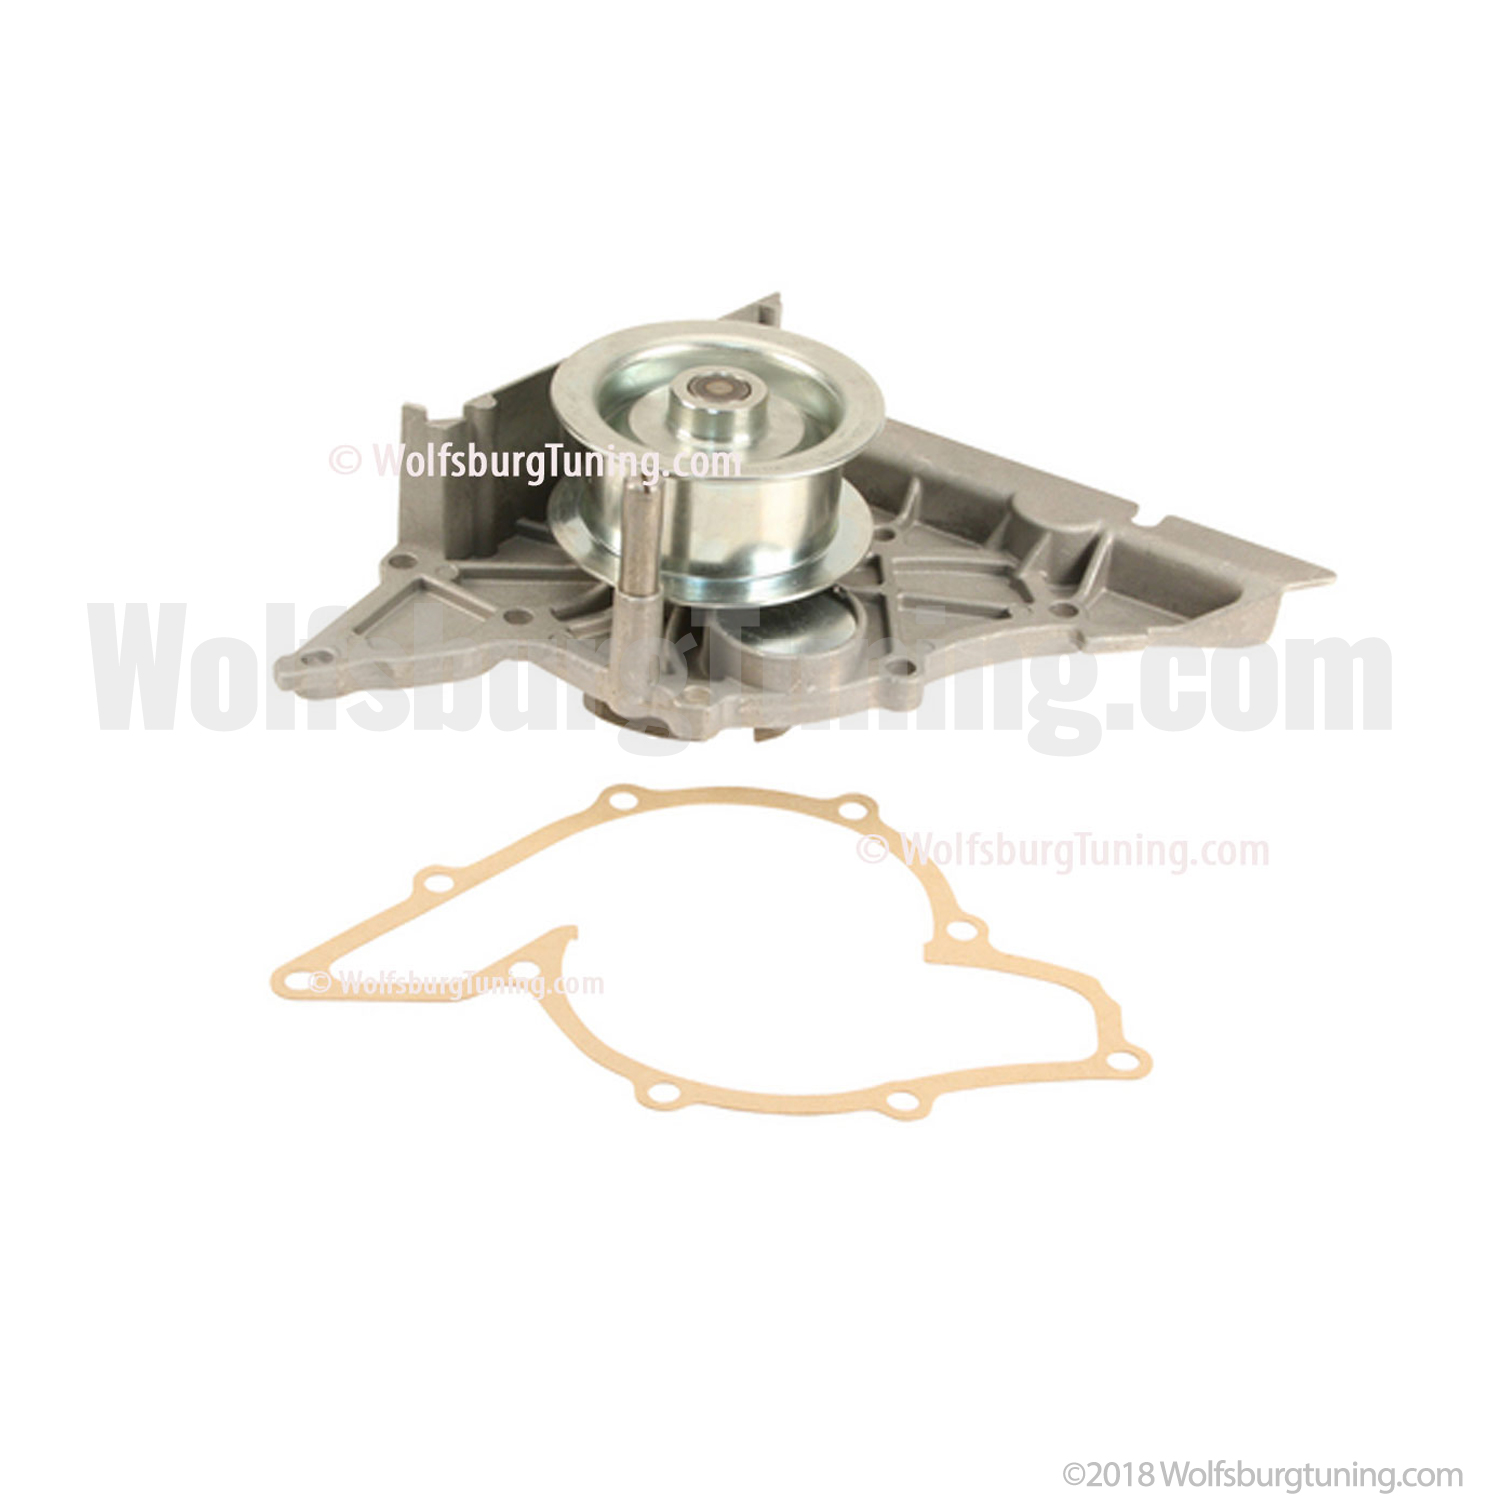 Water Pump - (metal impeller)